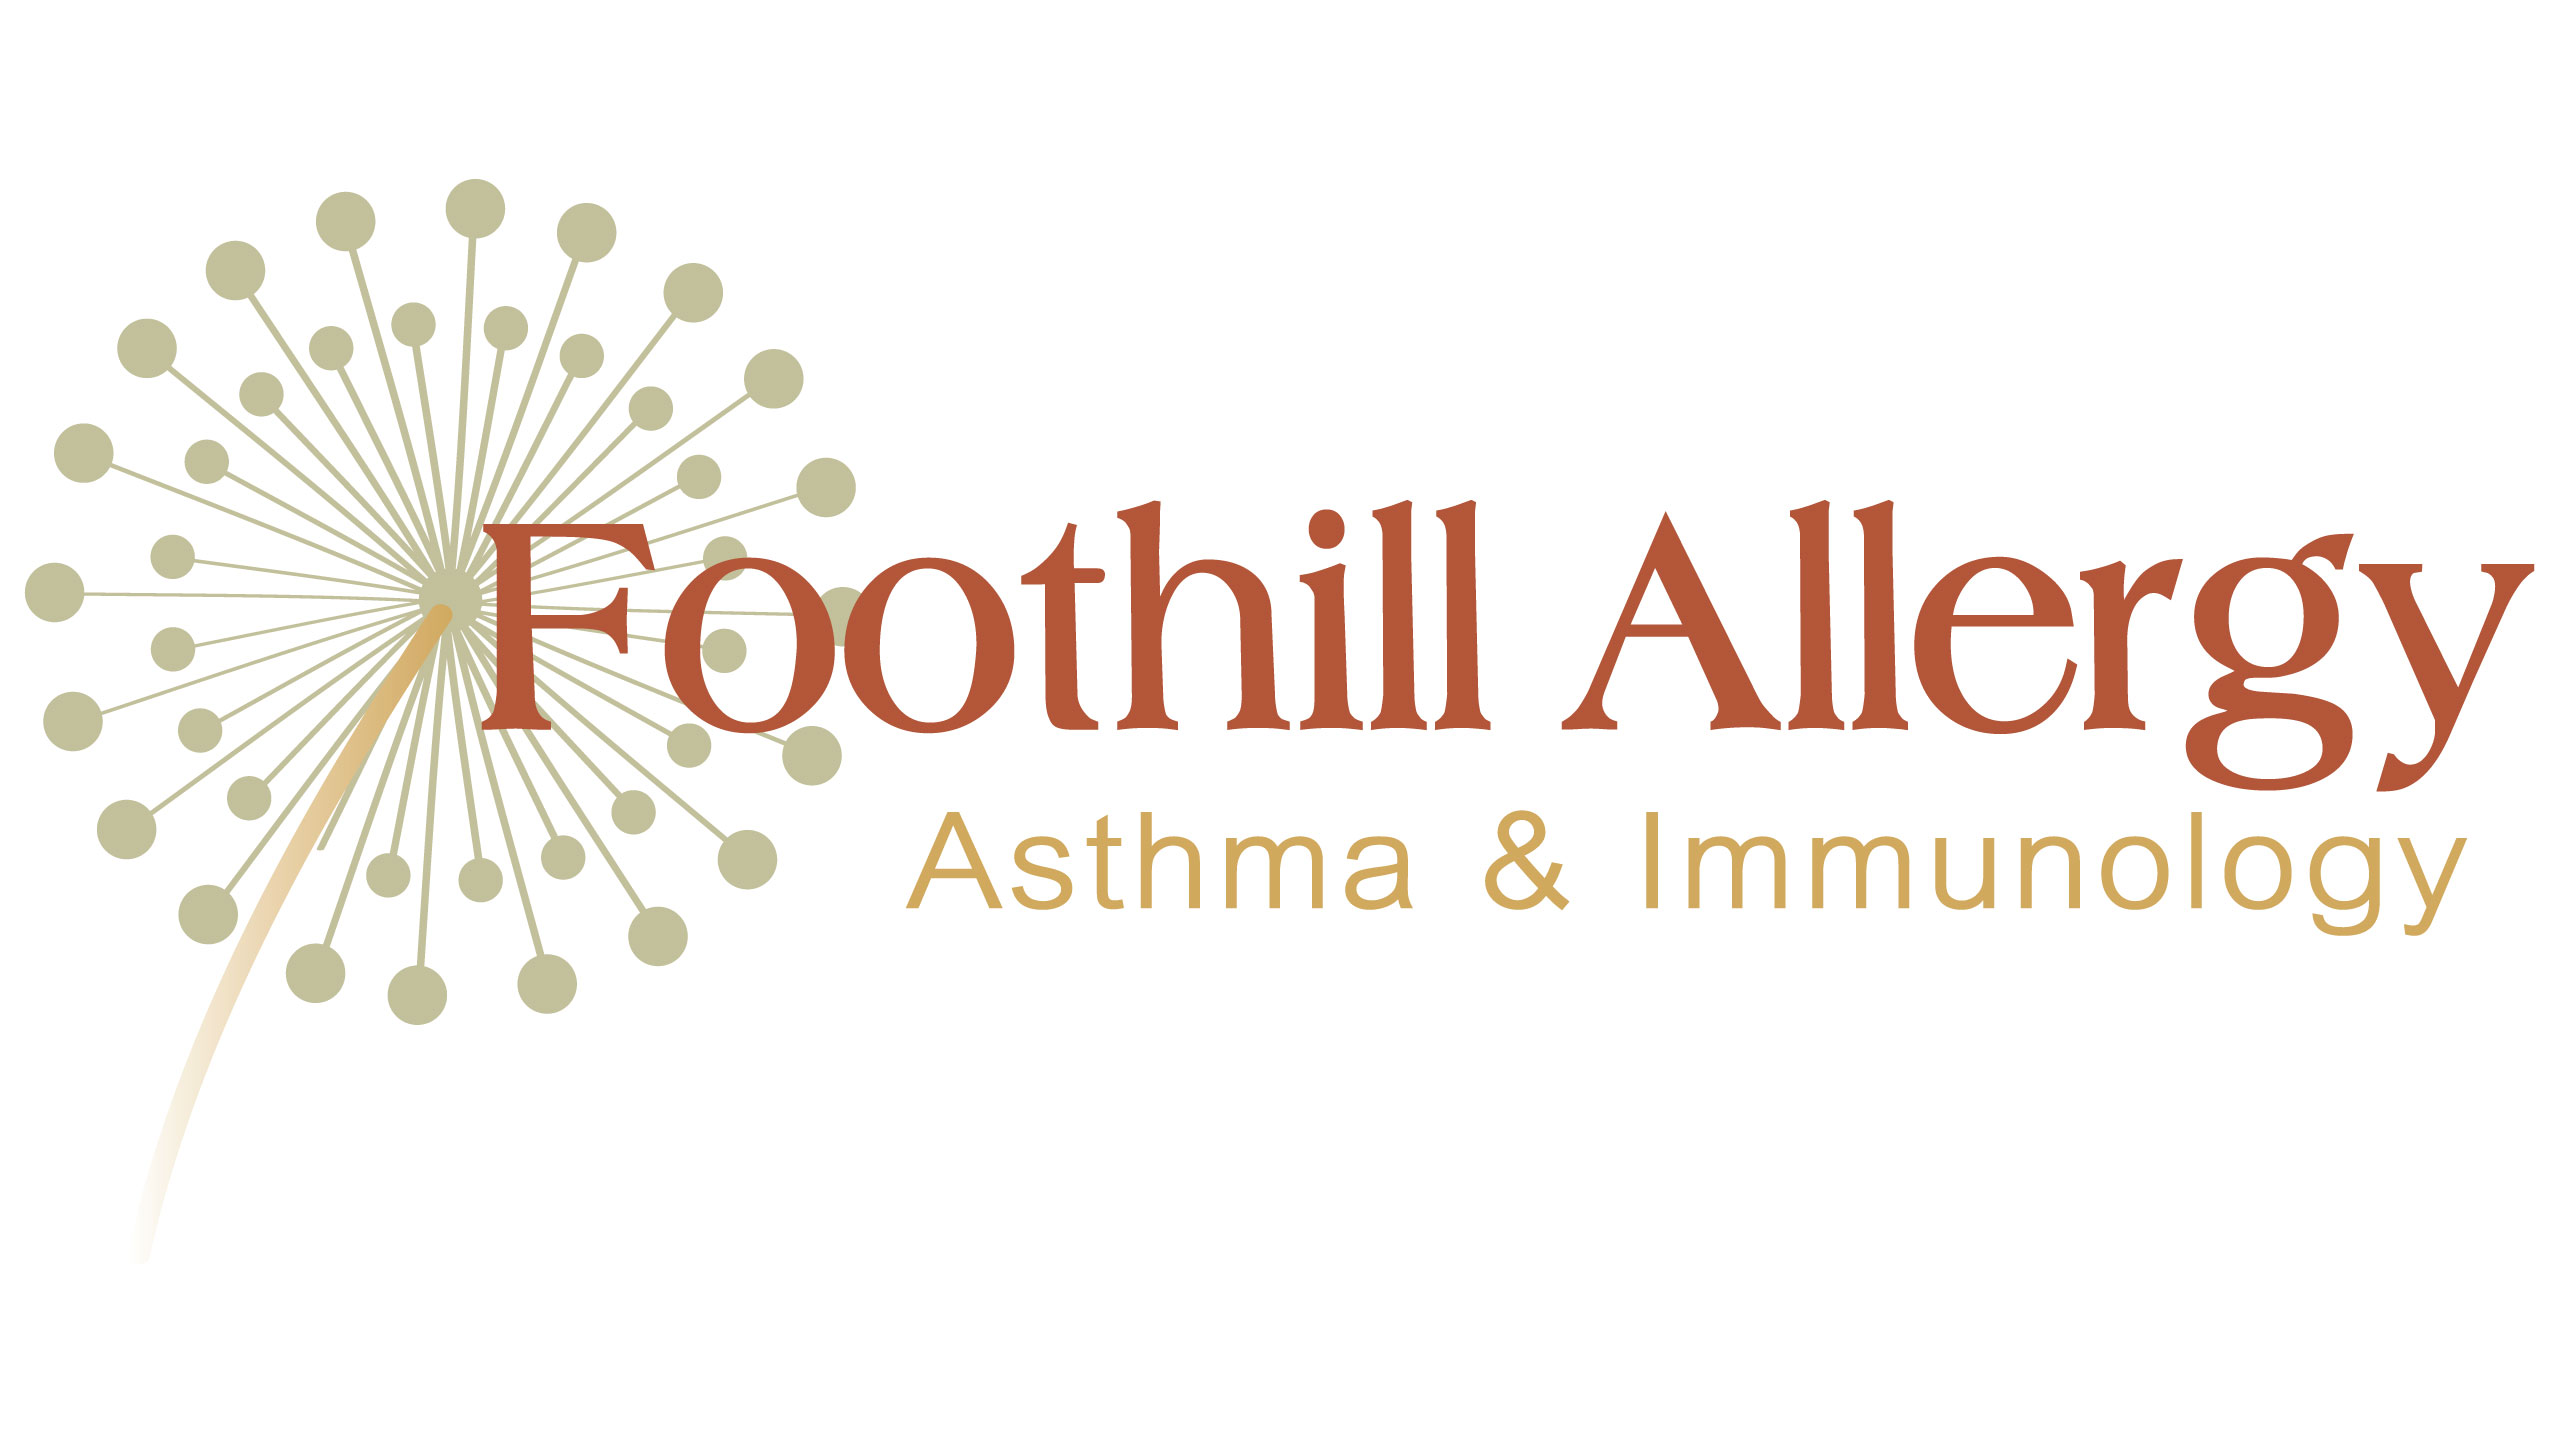 Foothill Allergy